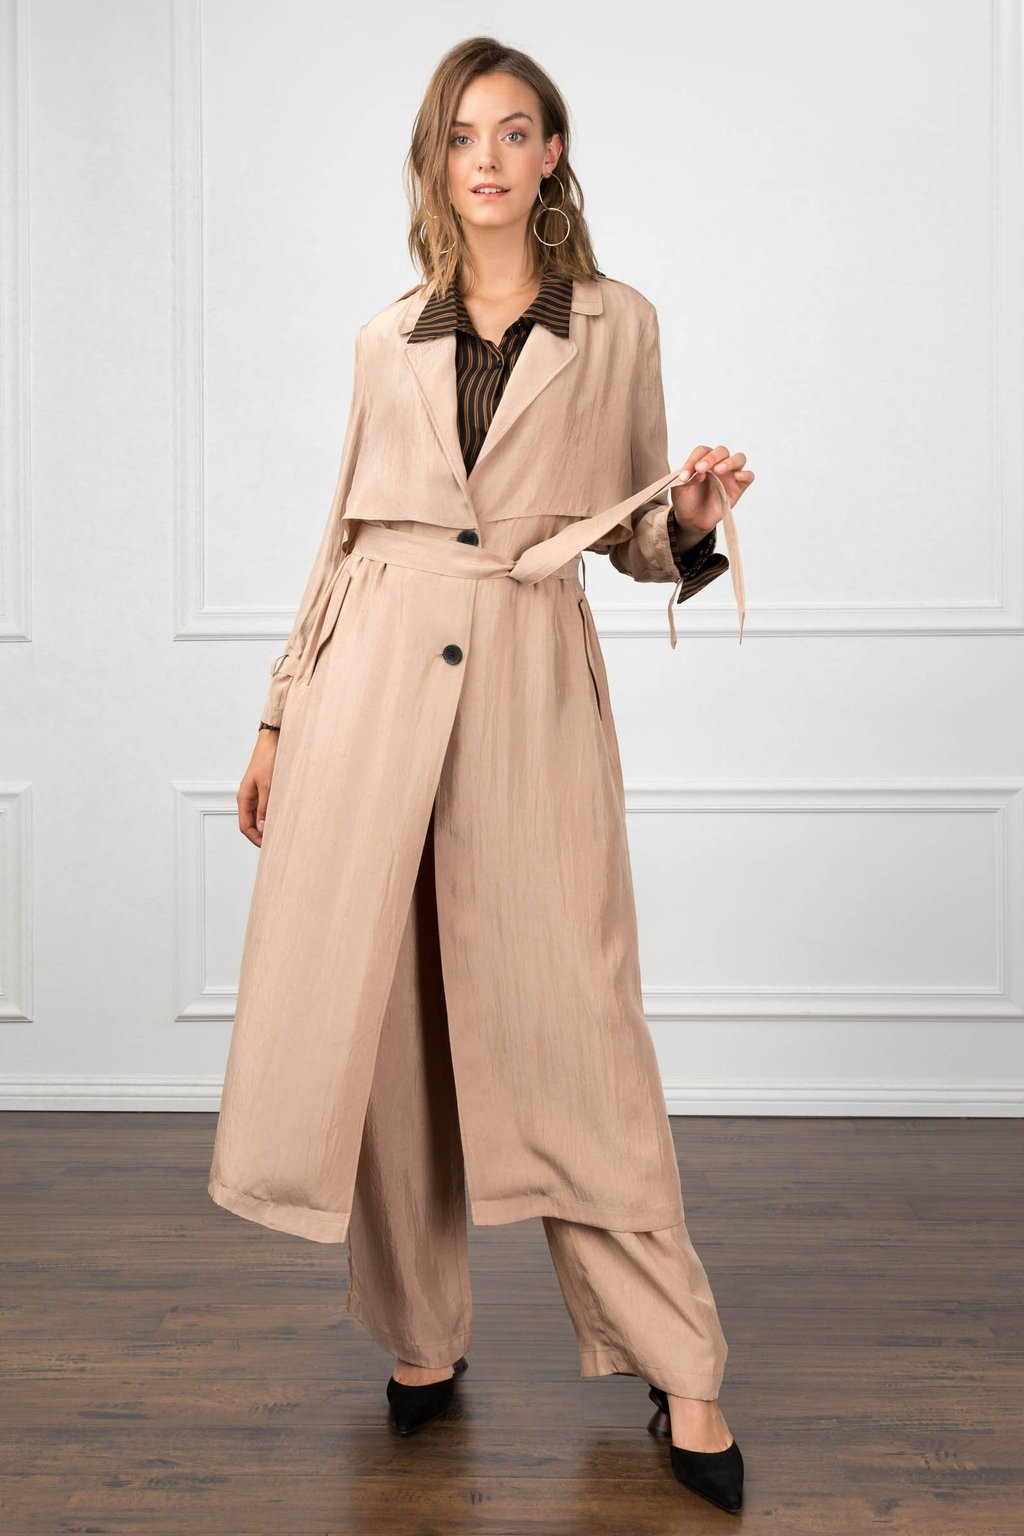 silk tan beige trench coat by j.ing women's clothing